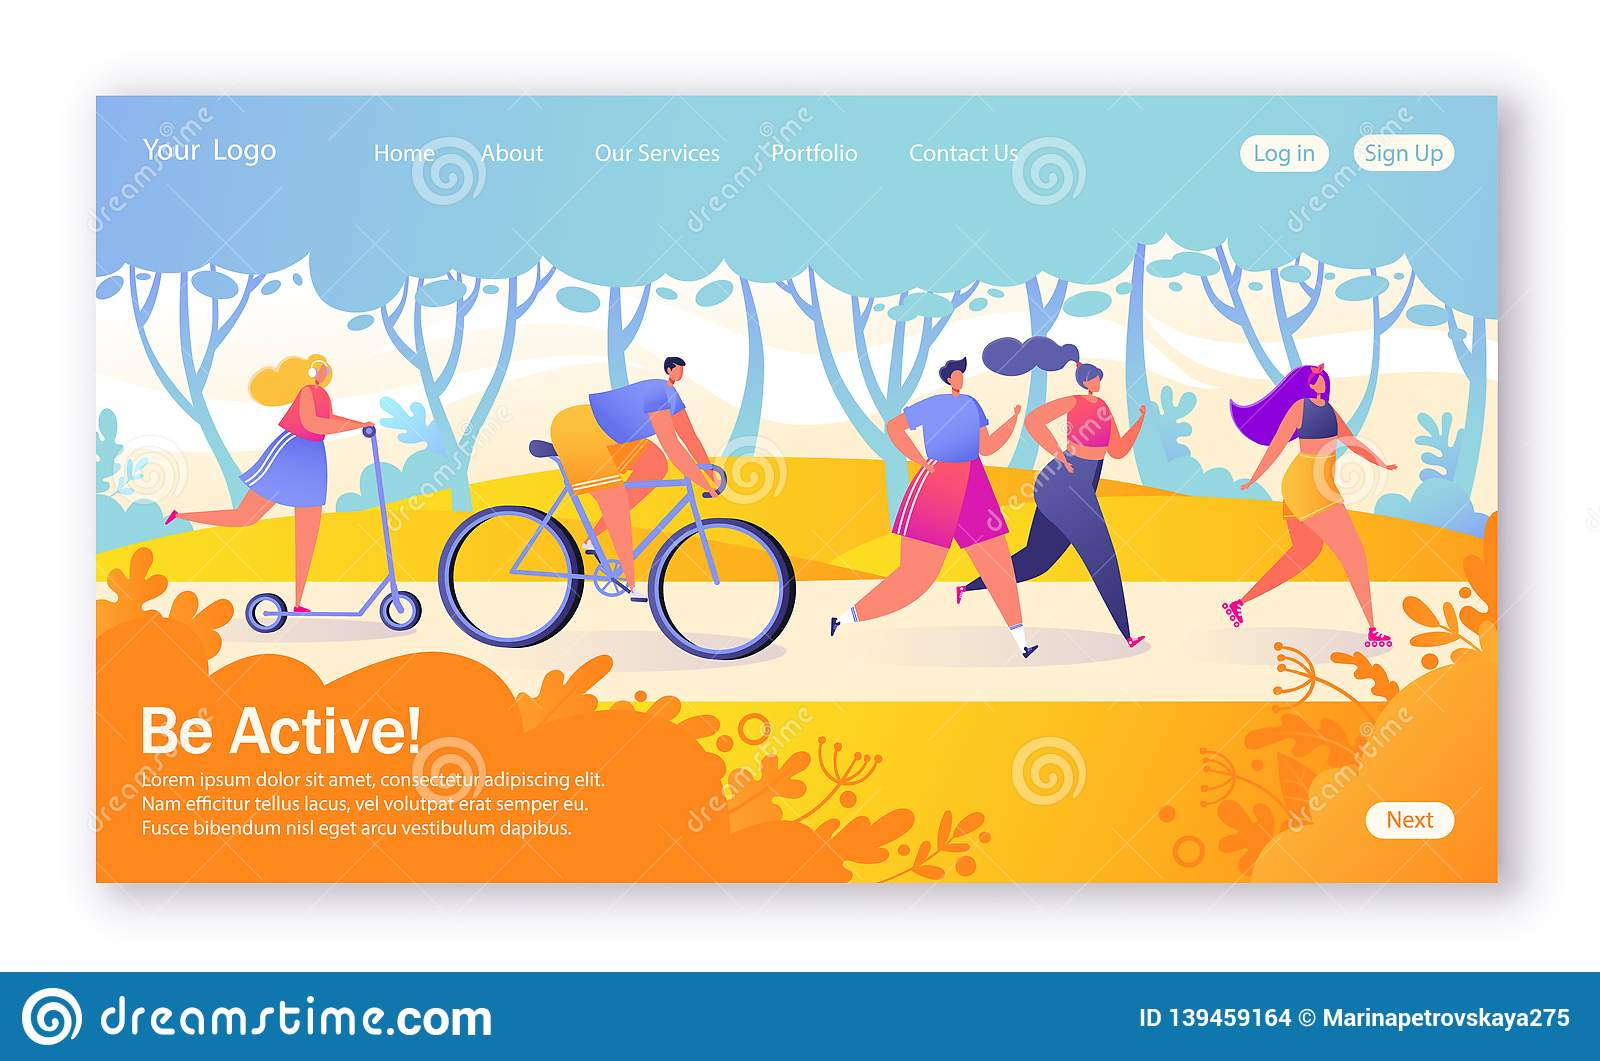 Concept of landing page on healthy lifestyle theme. Active people sports. Happy characters riding bicycle, couplerunning, woman on